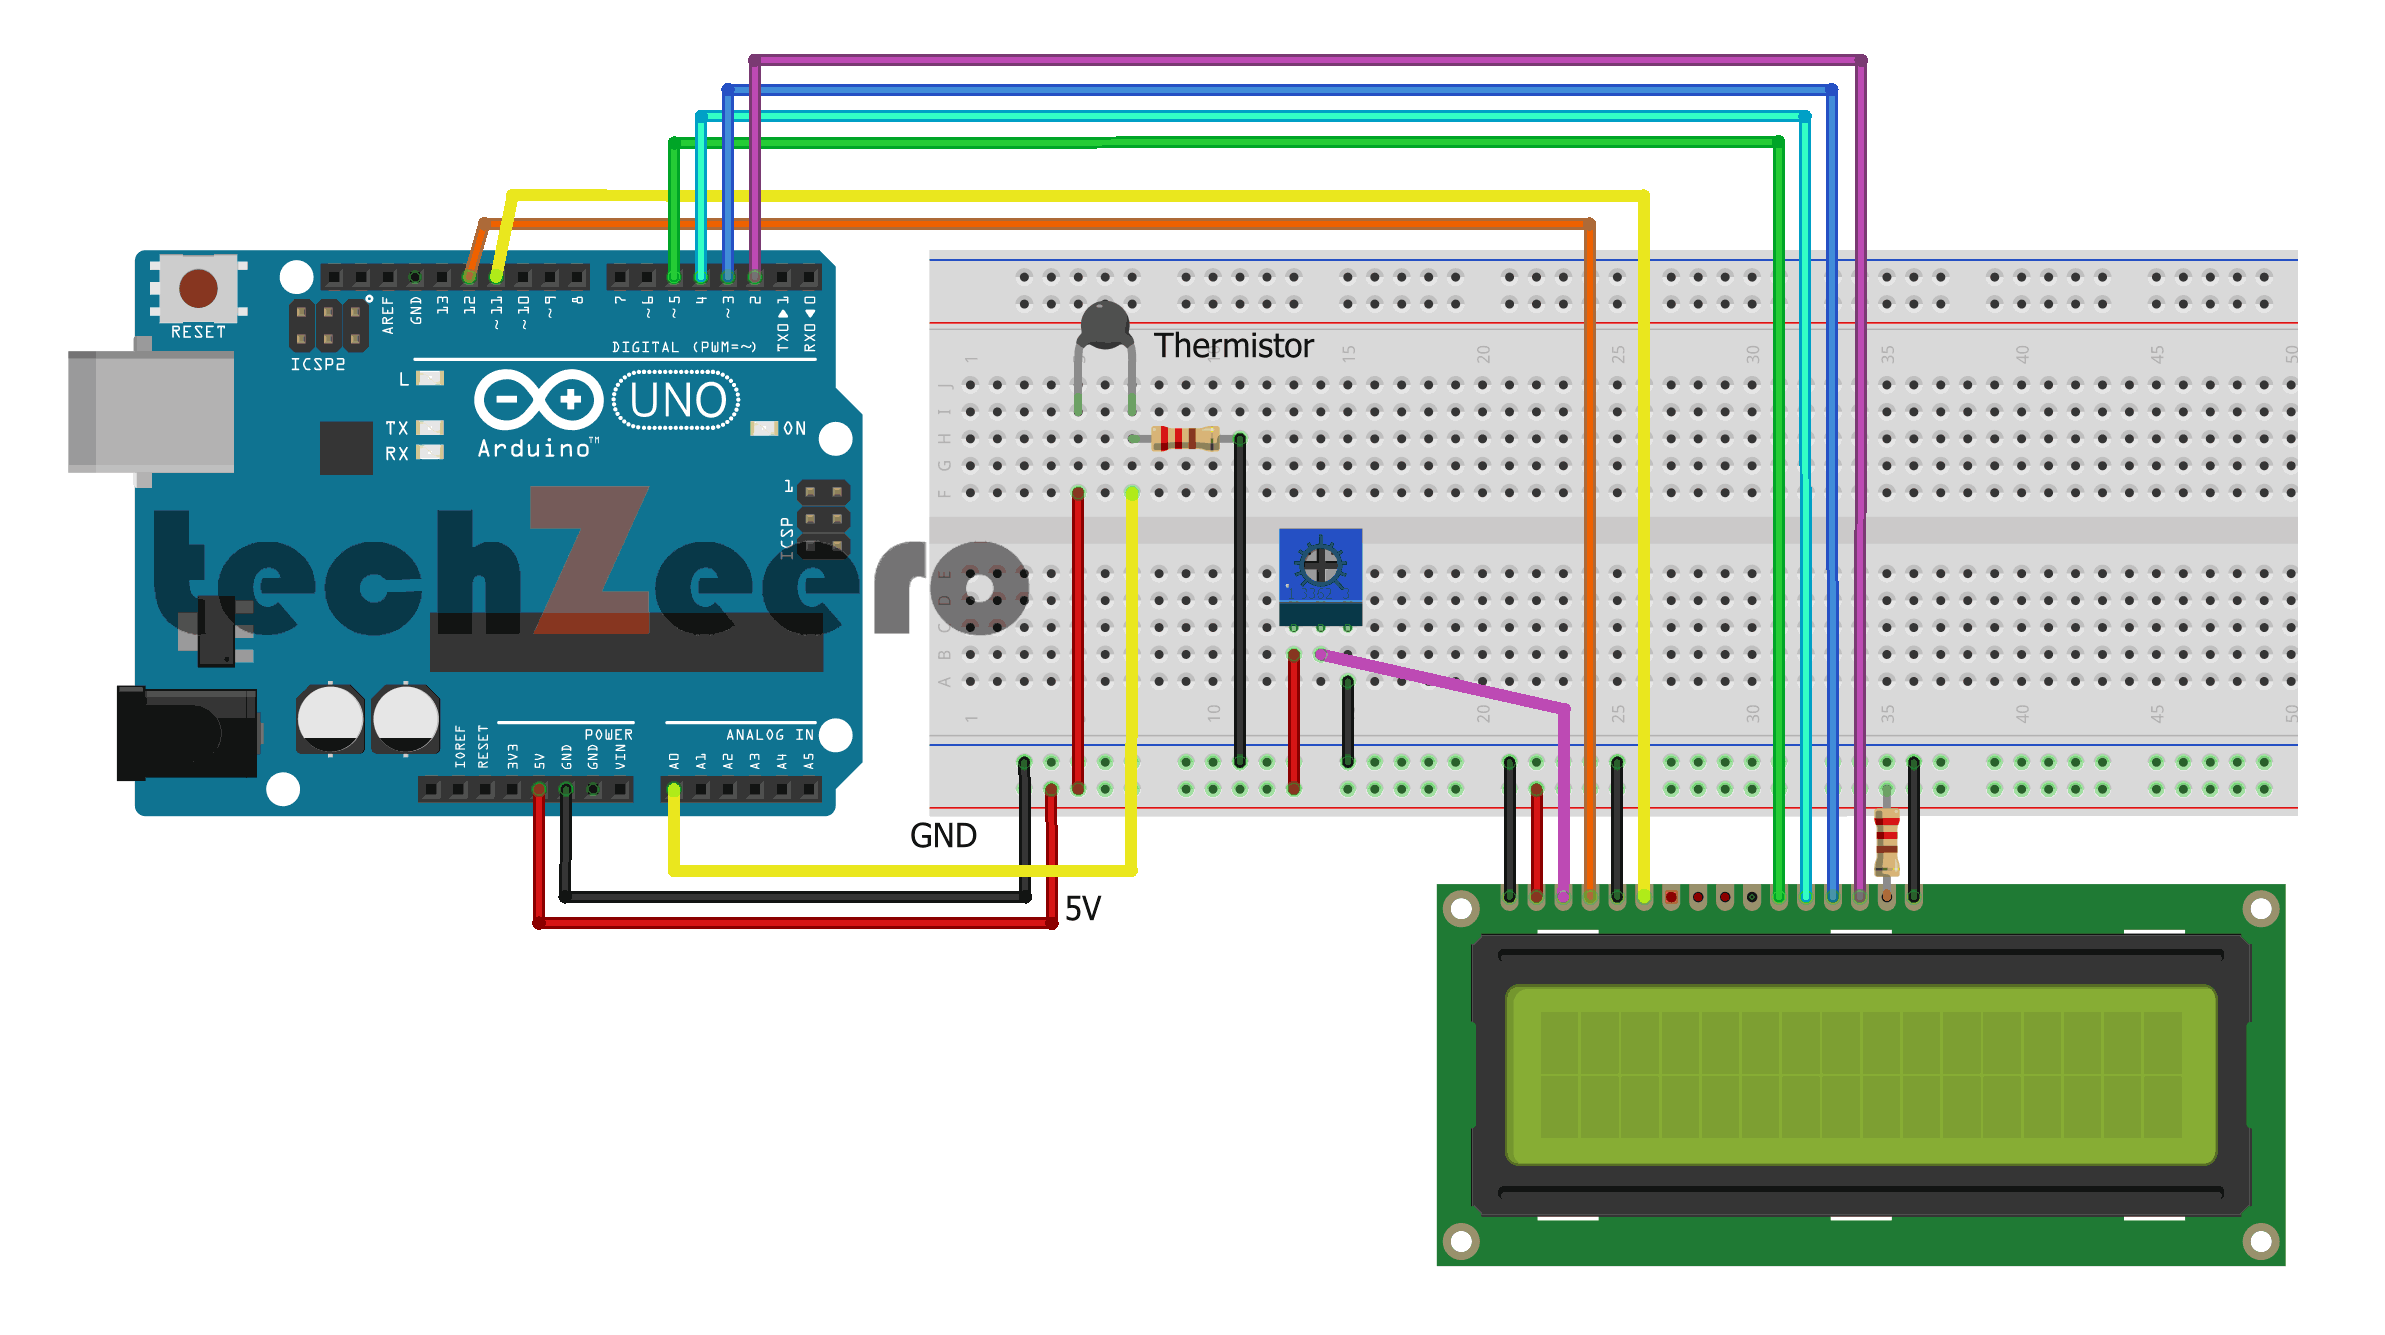 Circuit Diagram For Thermistor With LCD Display